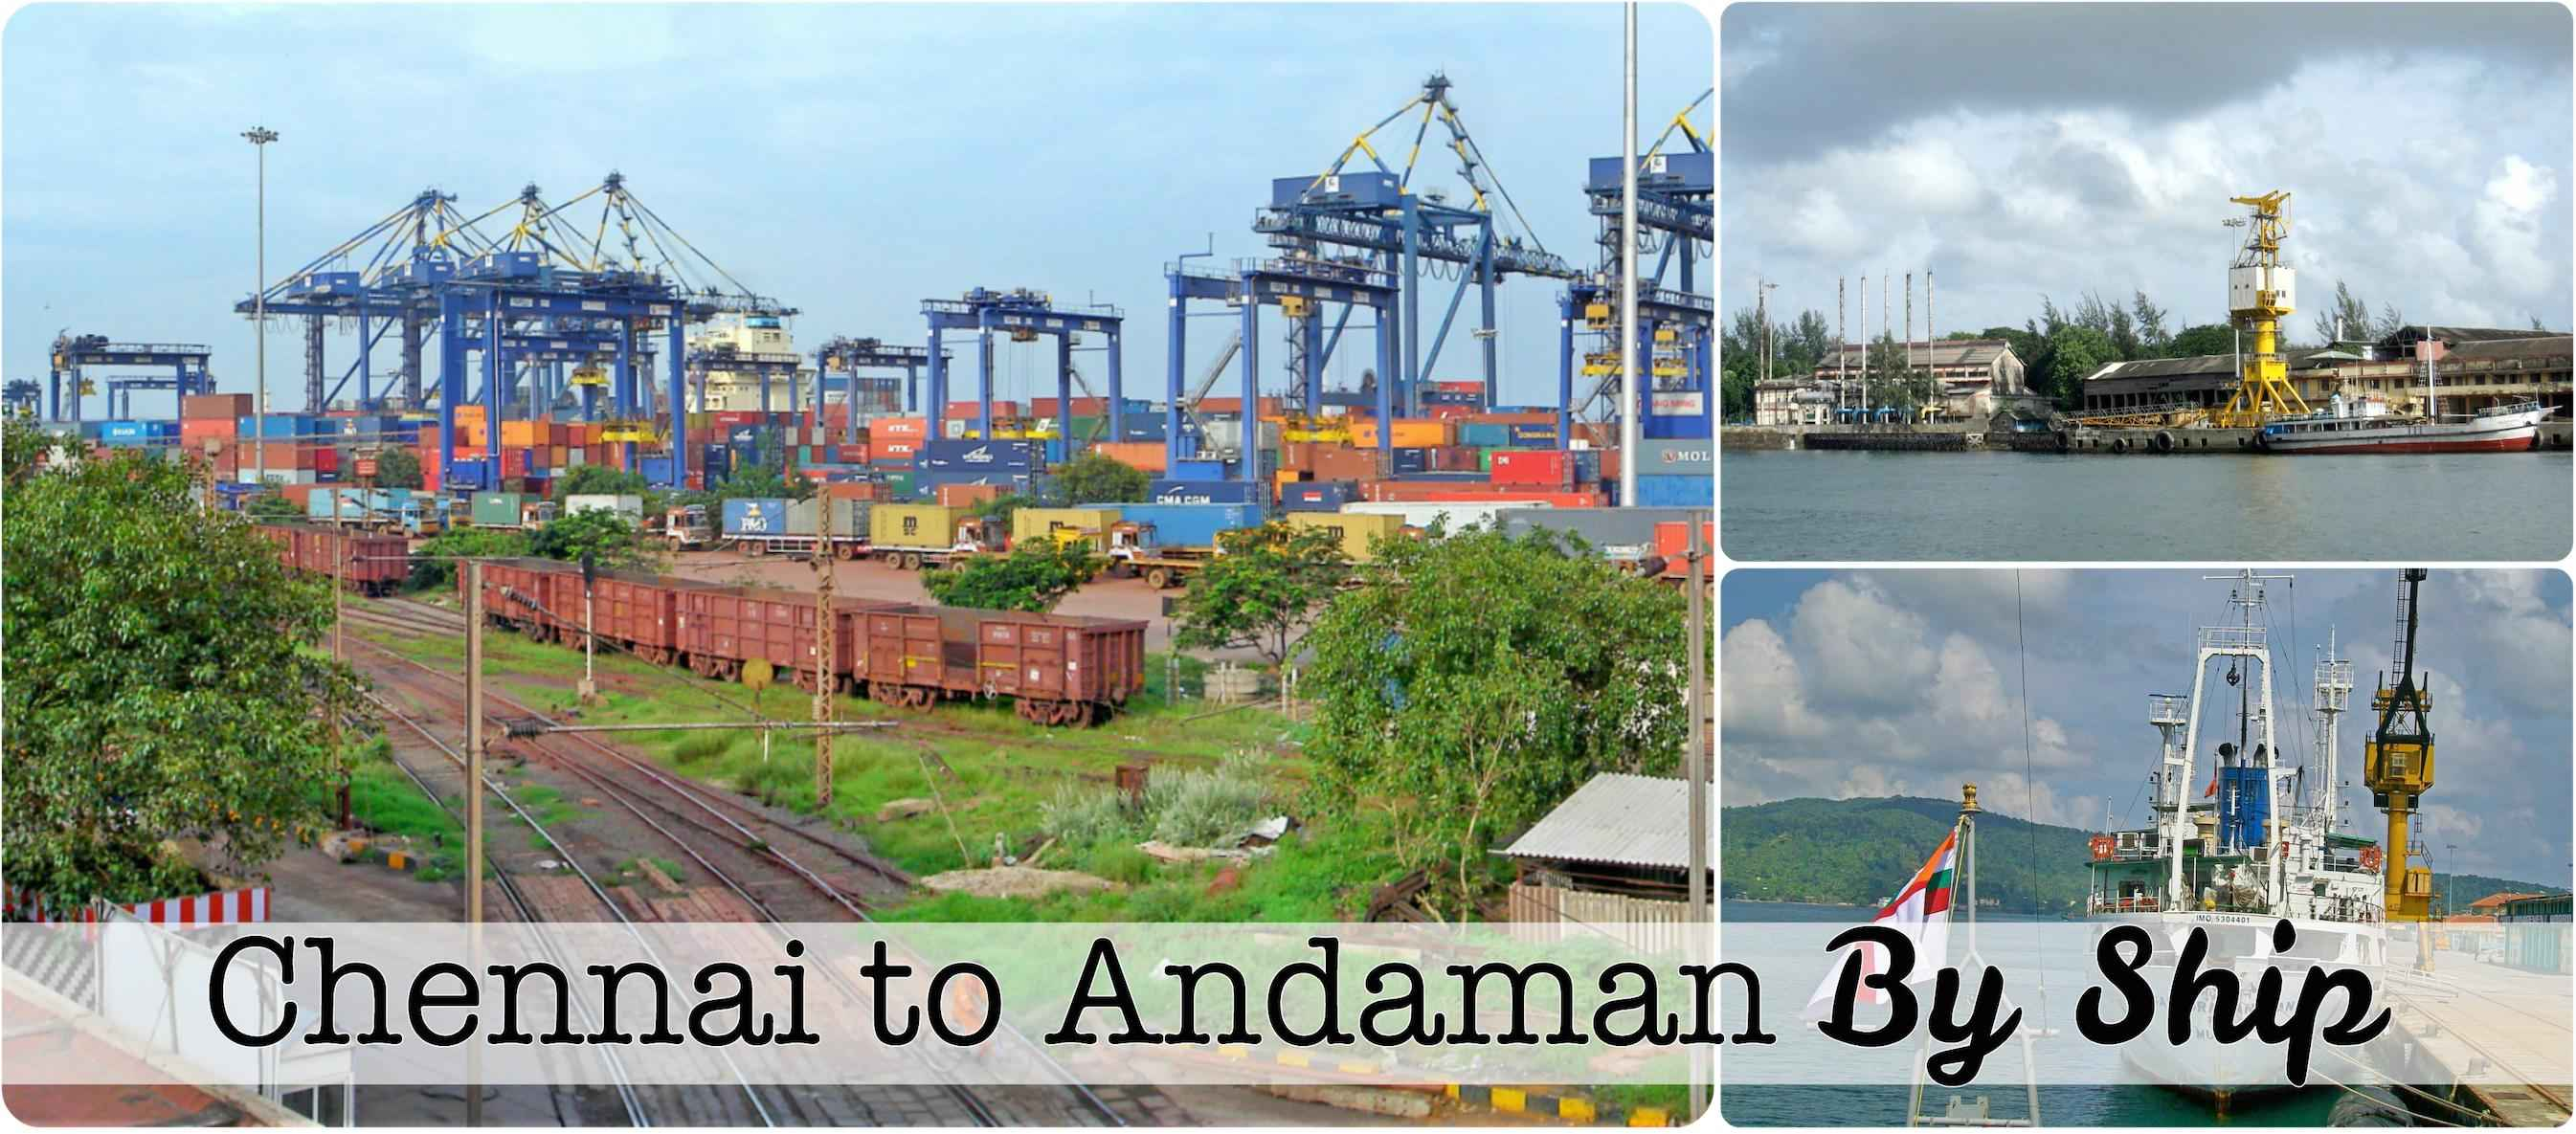 chennai-to-andaman-by-ship.jpg